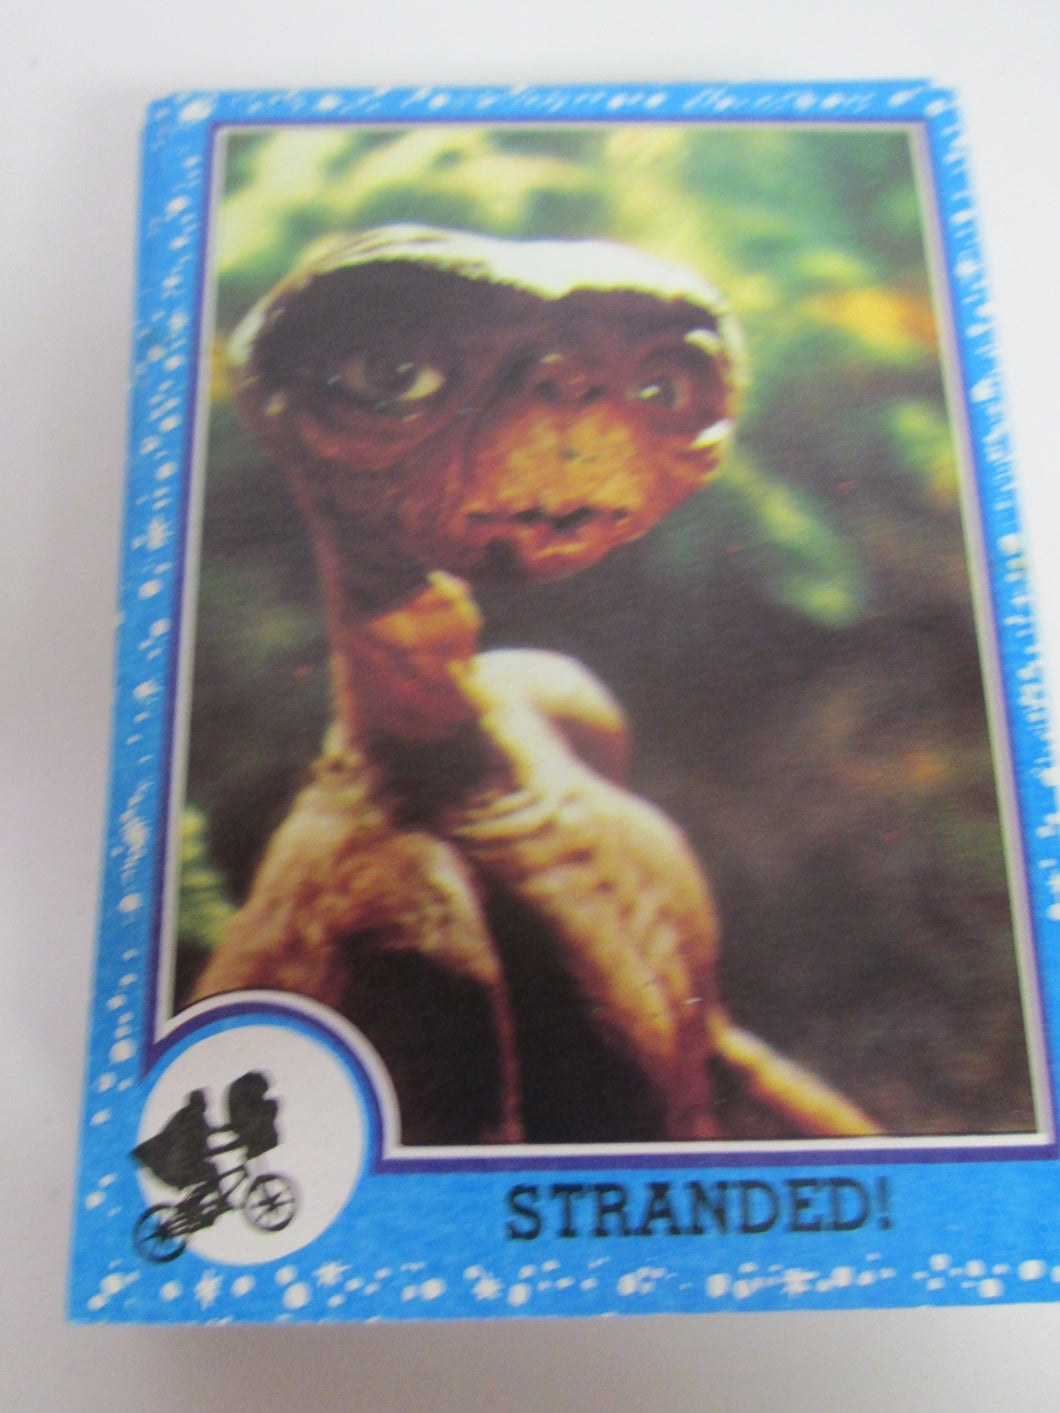 E.T. The Extra-Terrestrial 1982 43 random Cards from an 87 card set